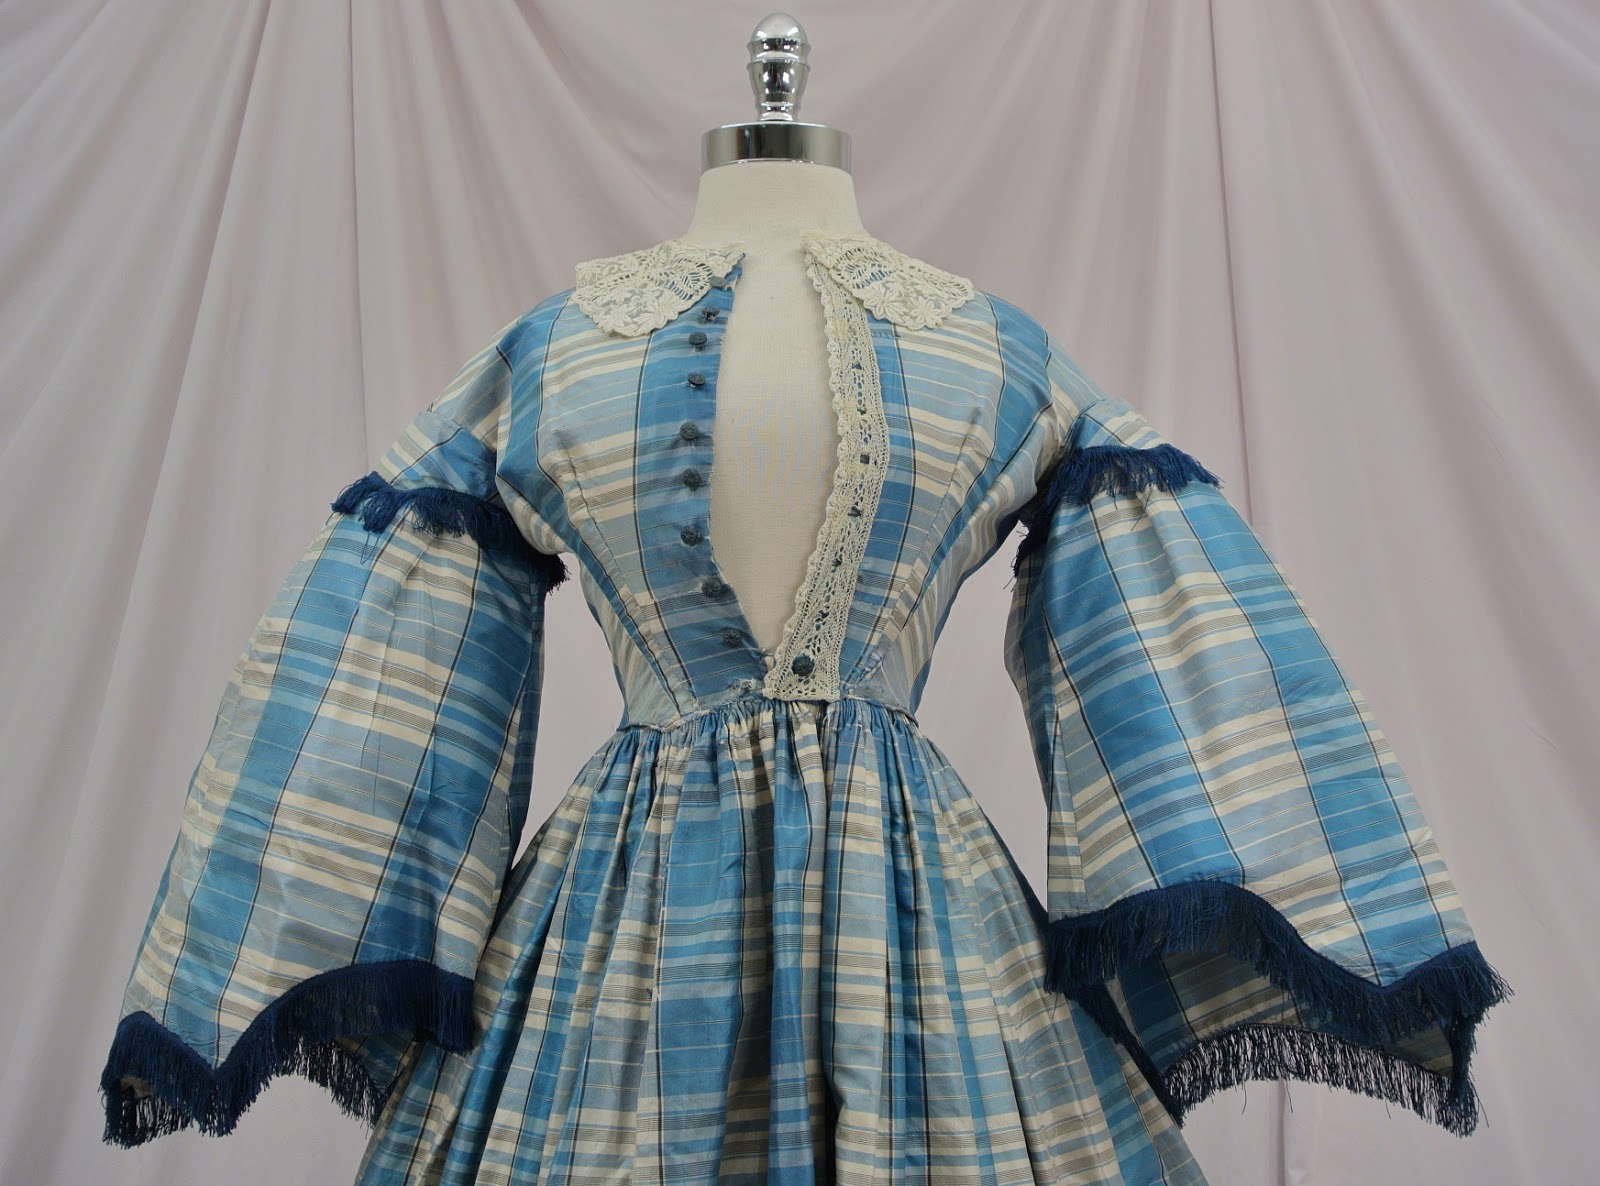 All The Pretty Dresses: Mid 19th Century Victorian Plaid